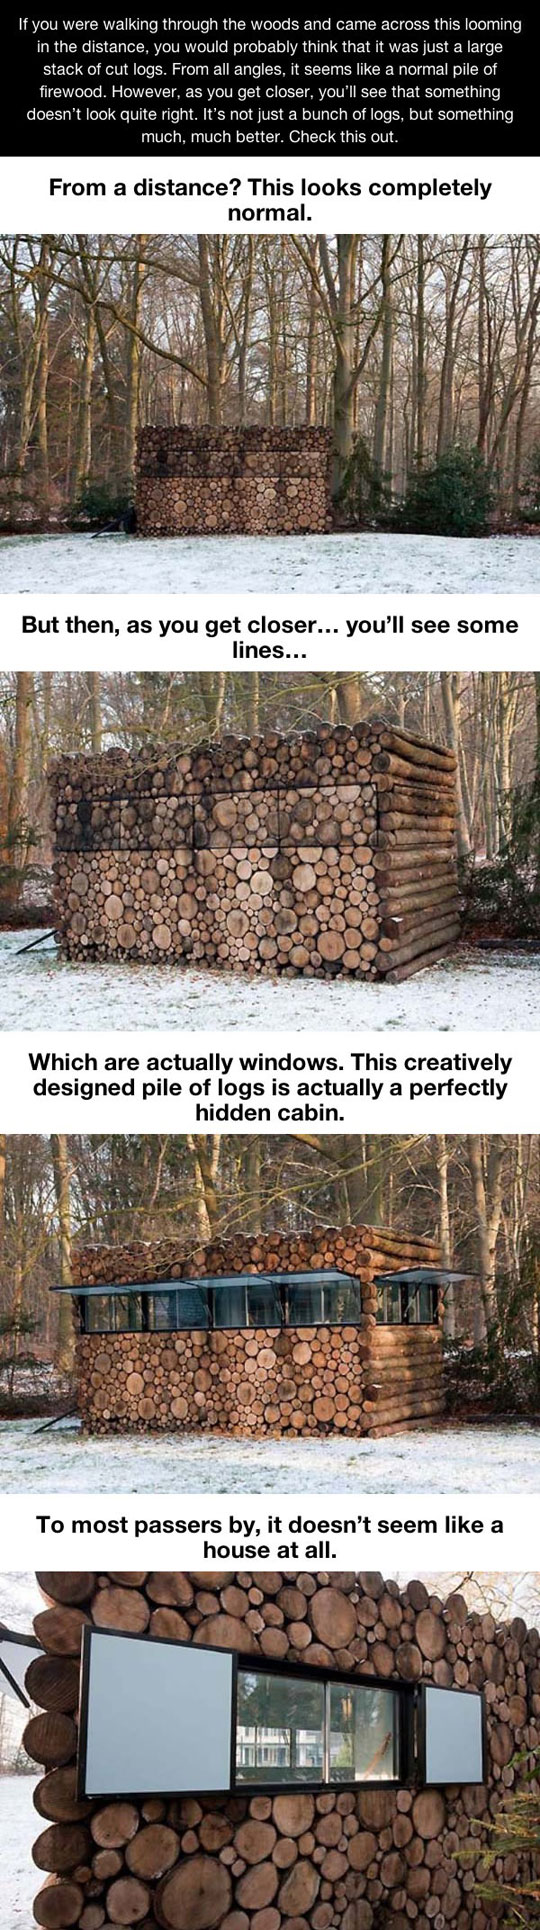 cool-cabin-forest-logs-concealed-snow